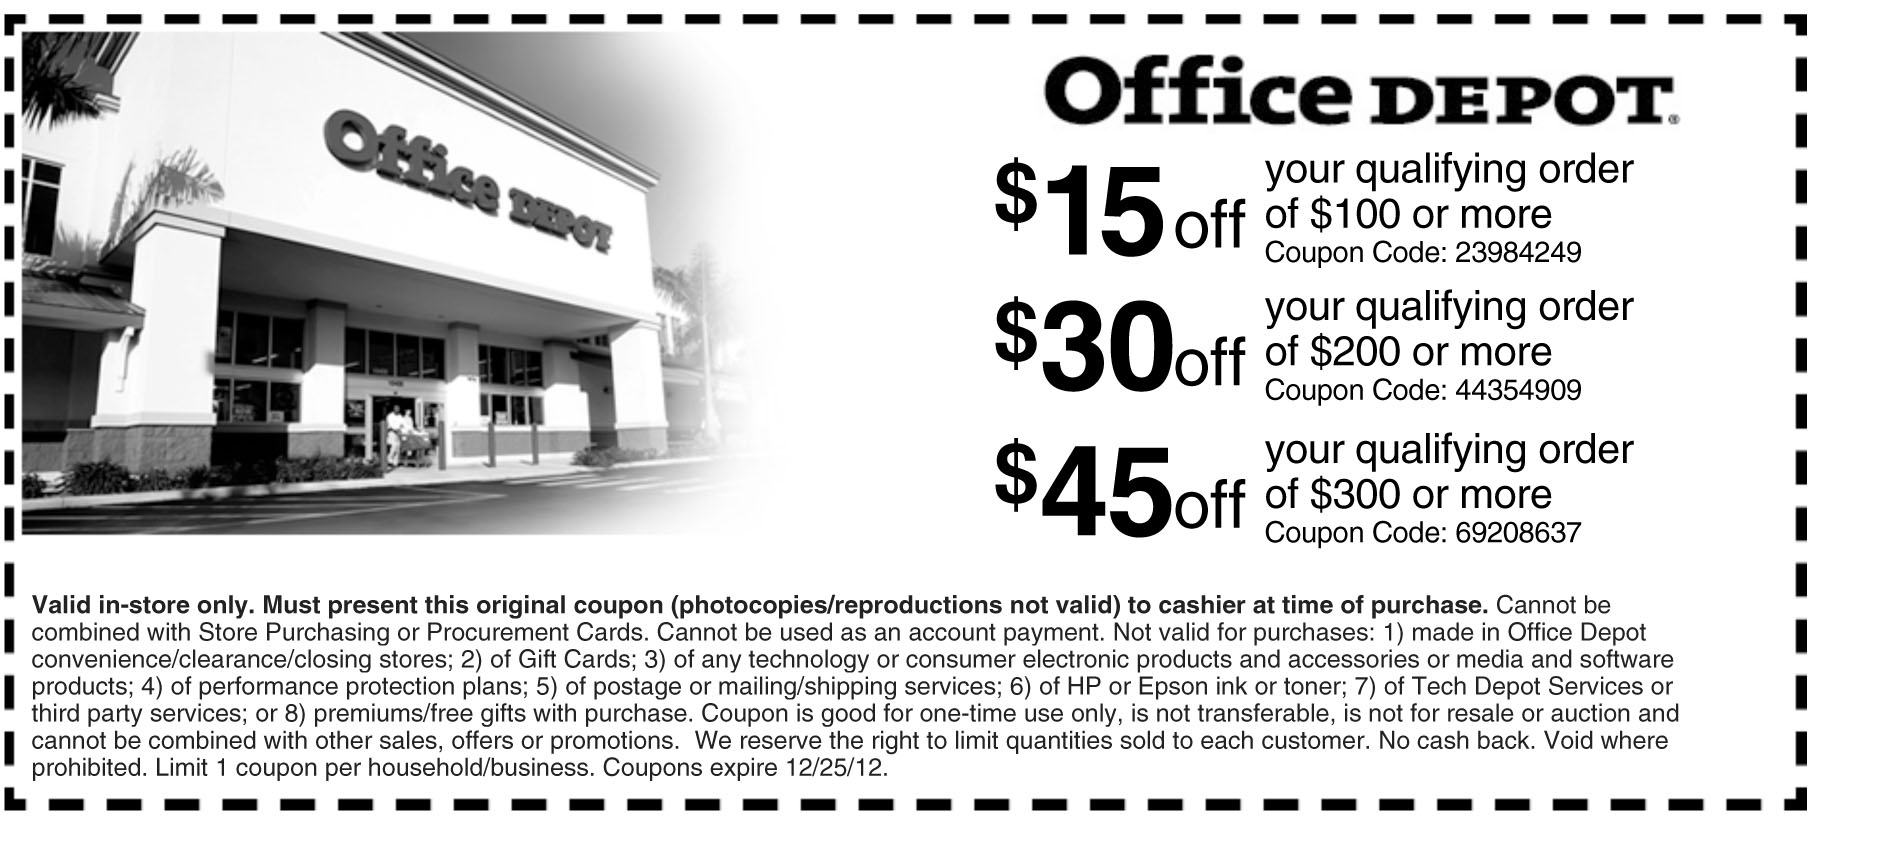 Office depot print and copy coupon - City sights new york